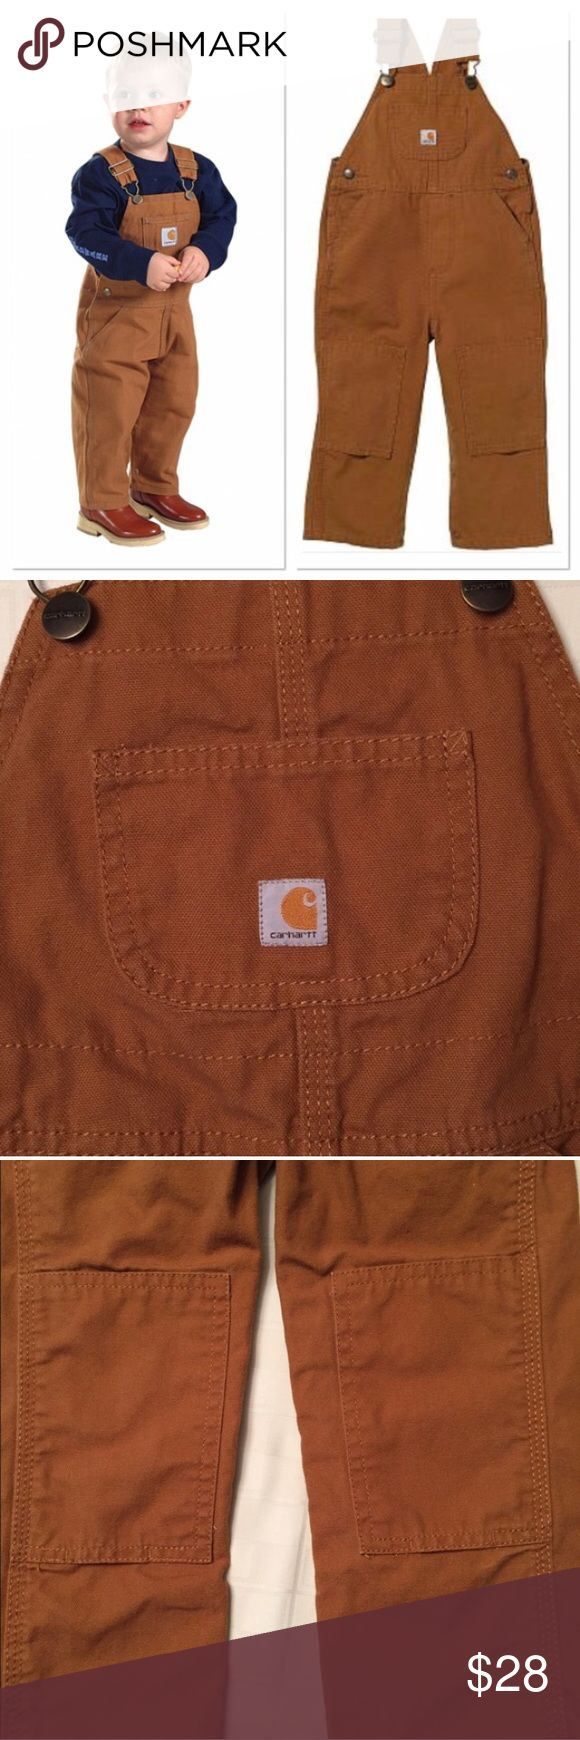 Carhartt Bibs little boys 4t toddler overalls Reposh! These were too big for my little guy. In perfect new condition size 4T 🤗 Tags: bibs overhauls snow pants overalls.  See note below and screenshot. Carhartt Bottoms Overalls